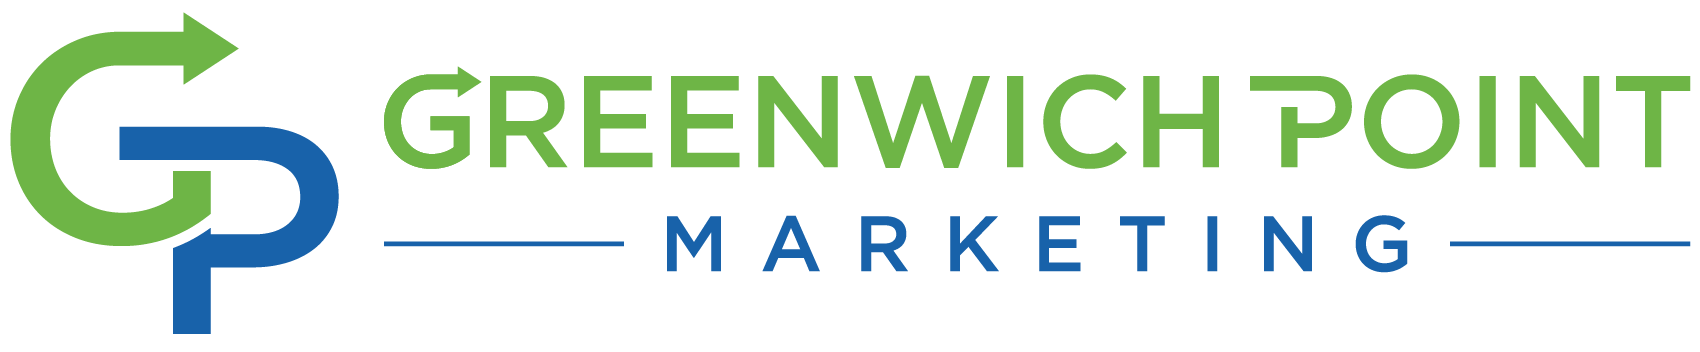 Greenwich Point Marketing